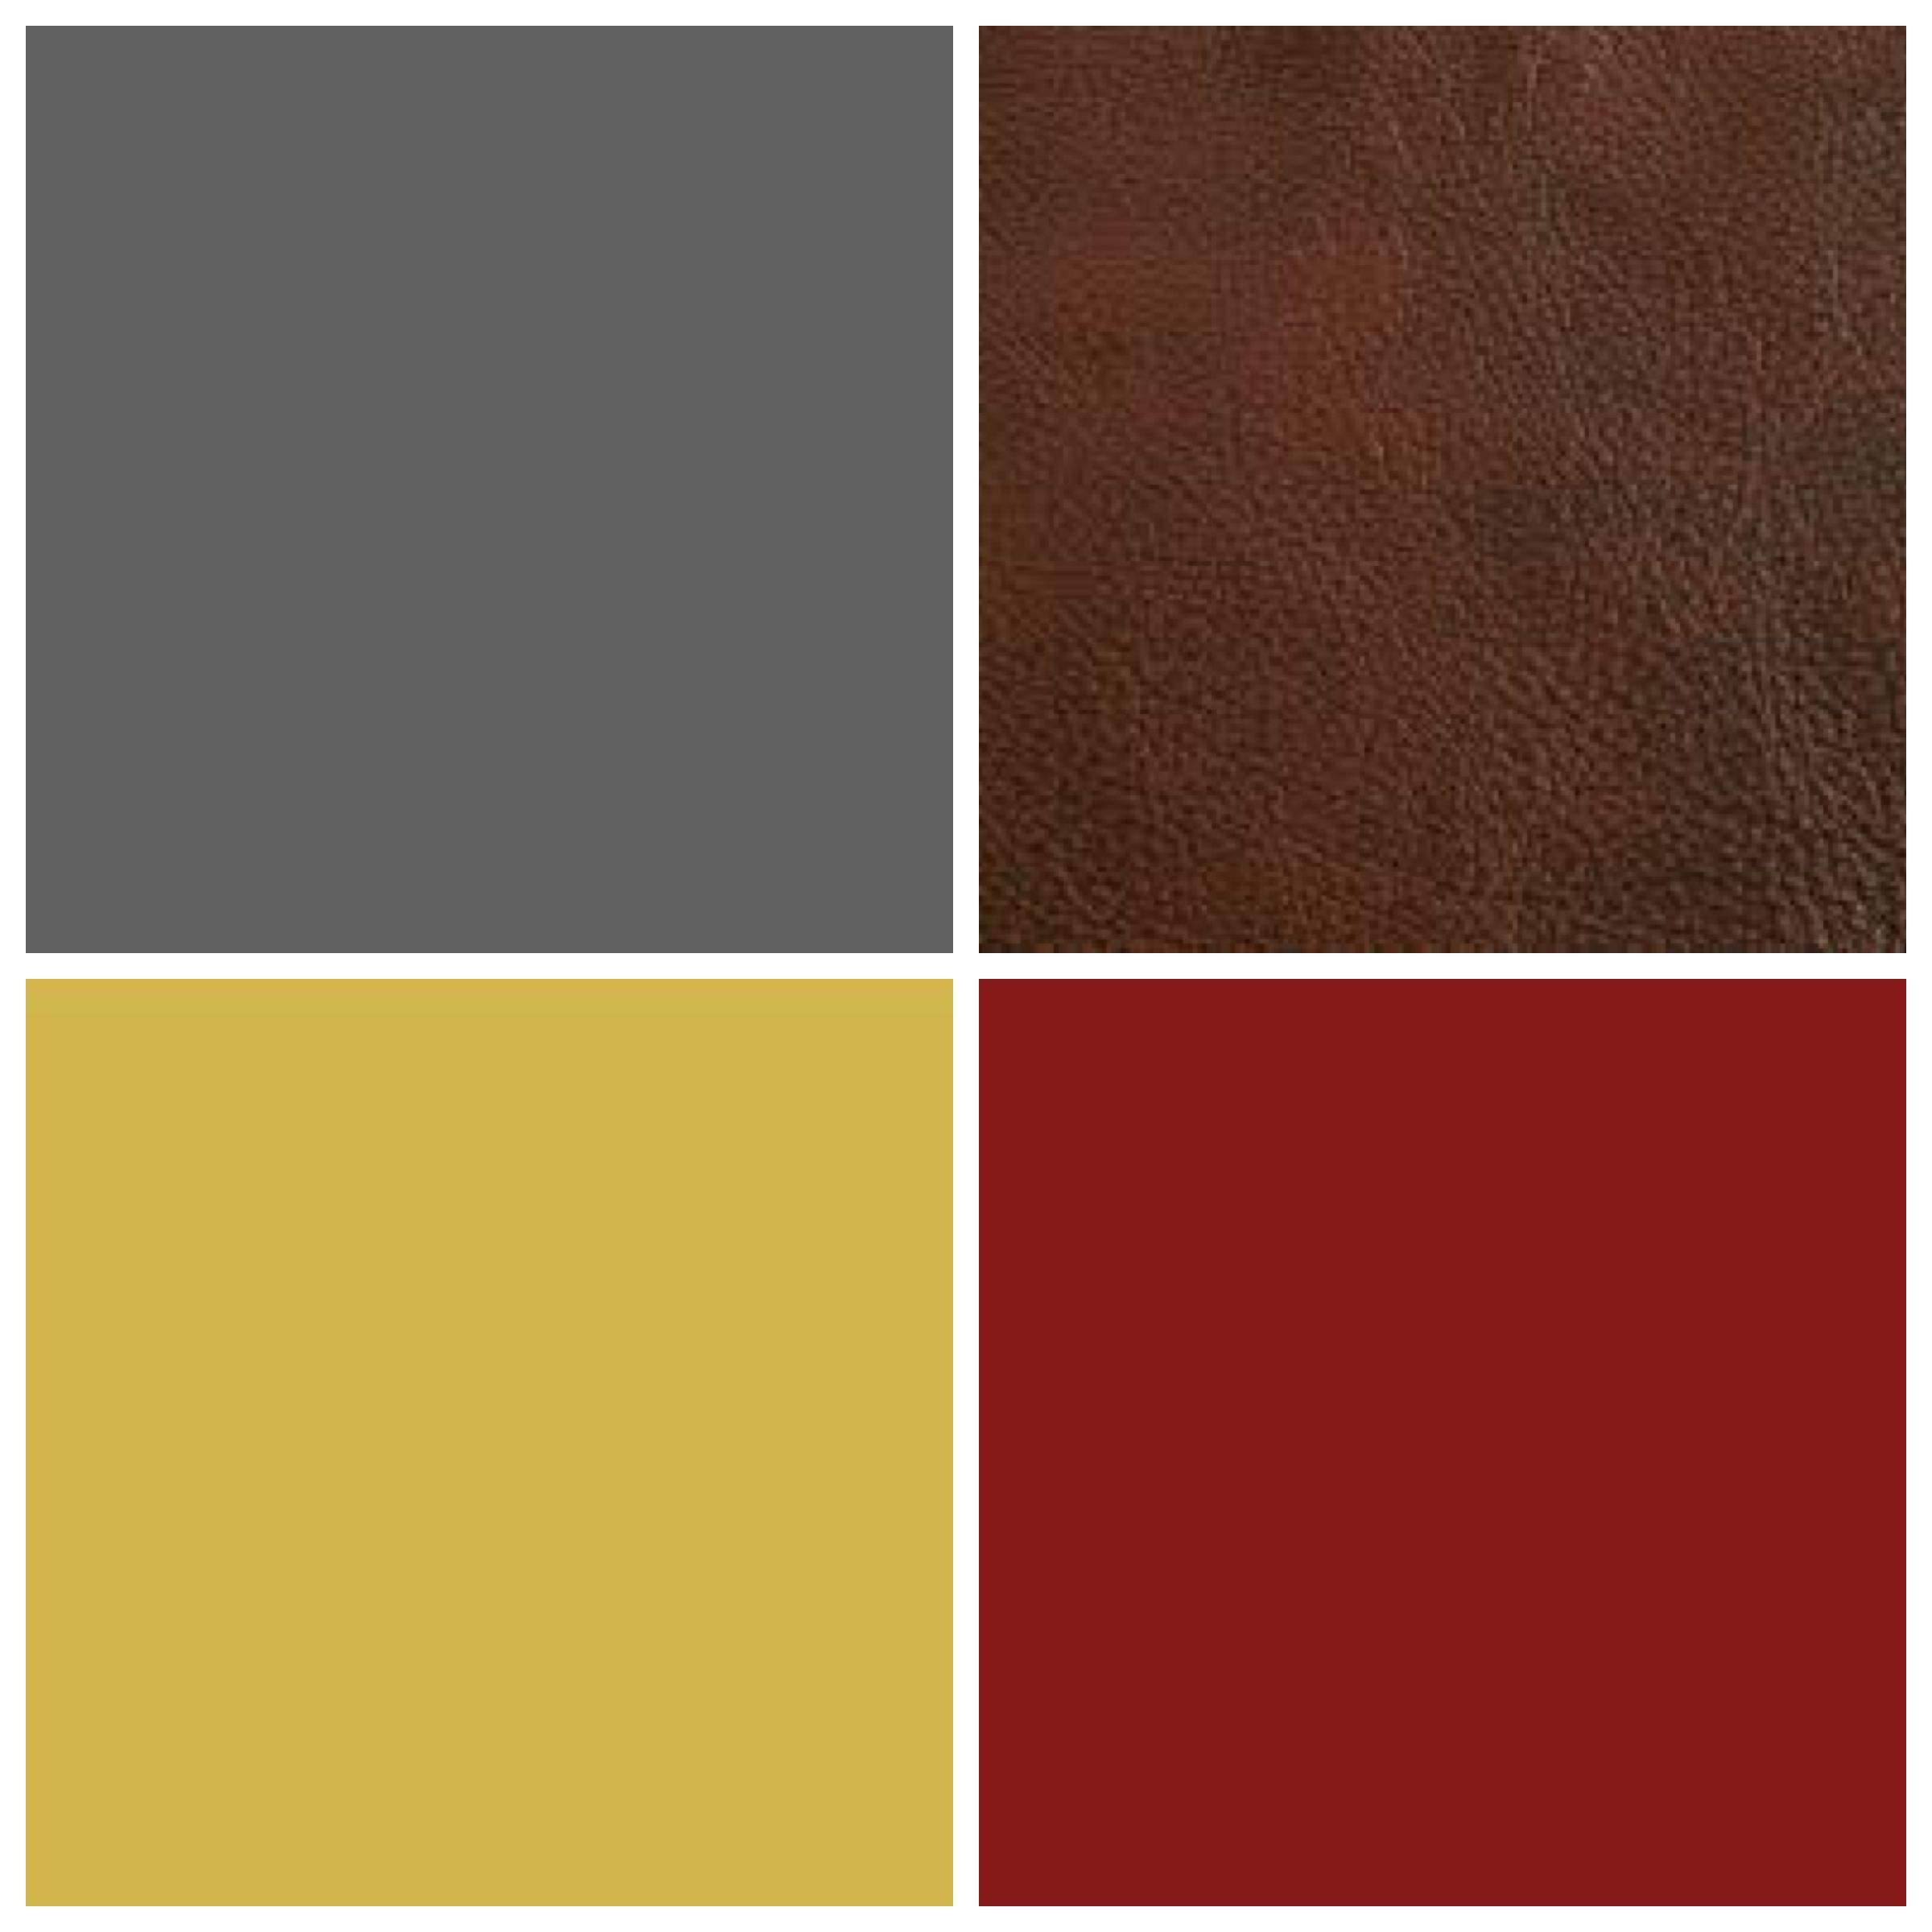 Design Yellow Color Schemes tuscan neutrals our living room color palette charcoal gray country red espresso